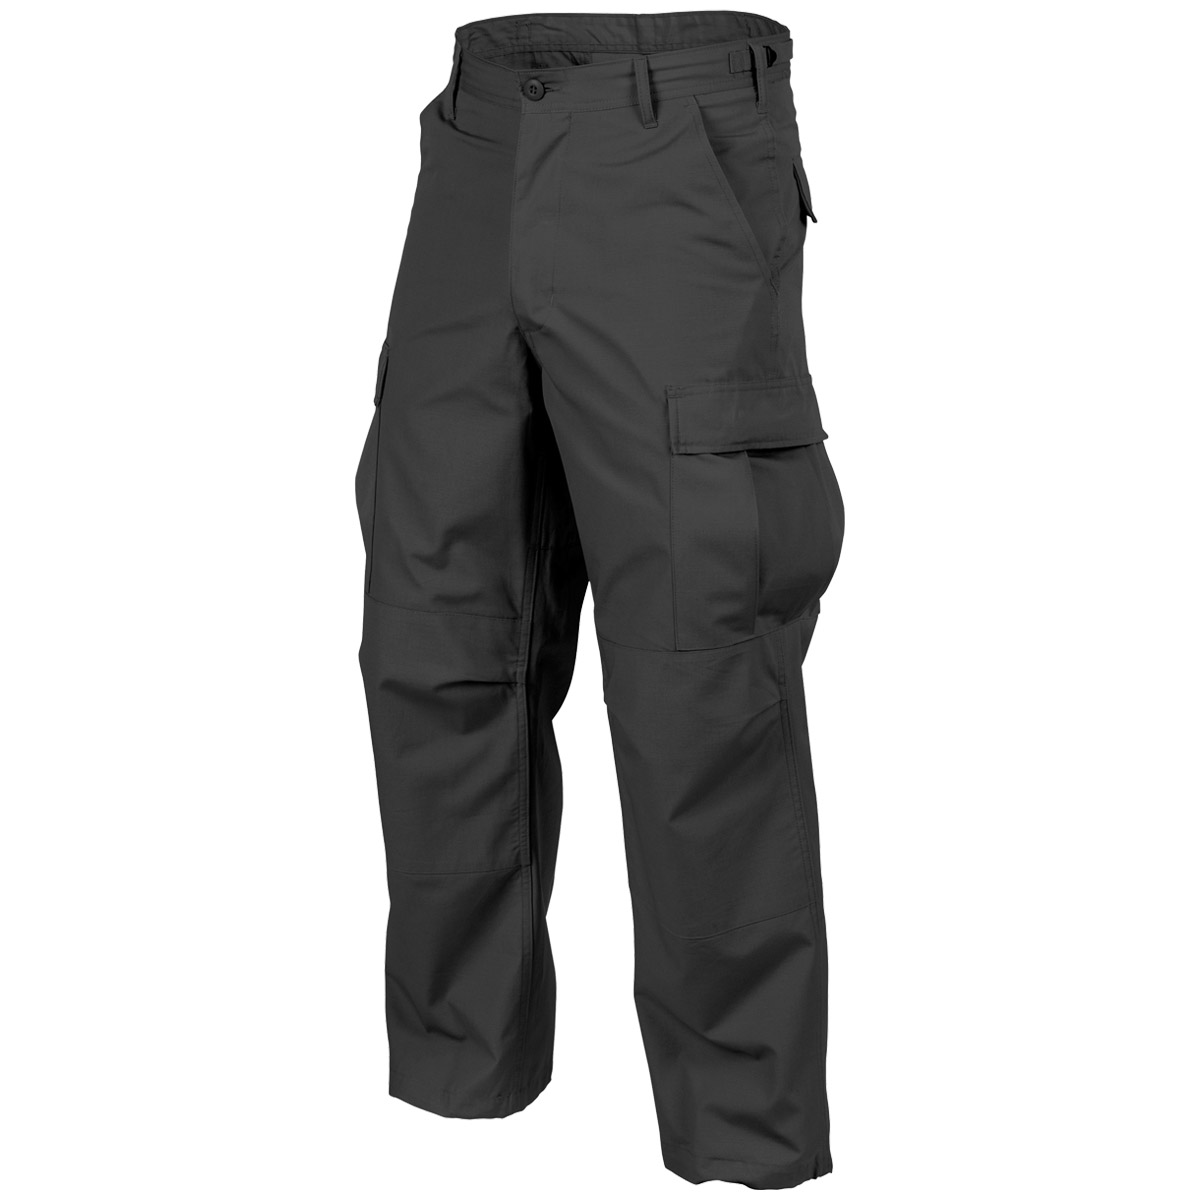 Details about Helikon Classic BDU Army Combat Trousers Mens Soldier  Tactical Cargo Pants Black 9ee3bf37950